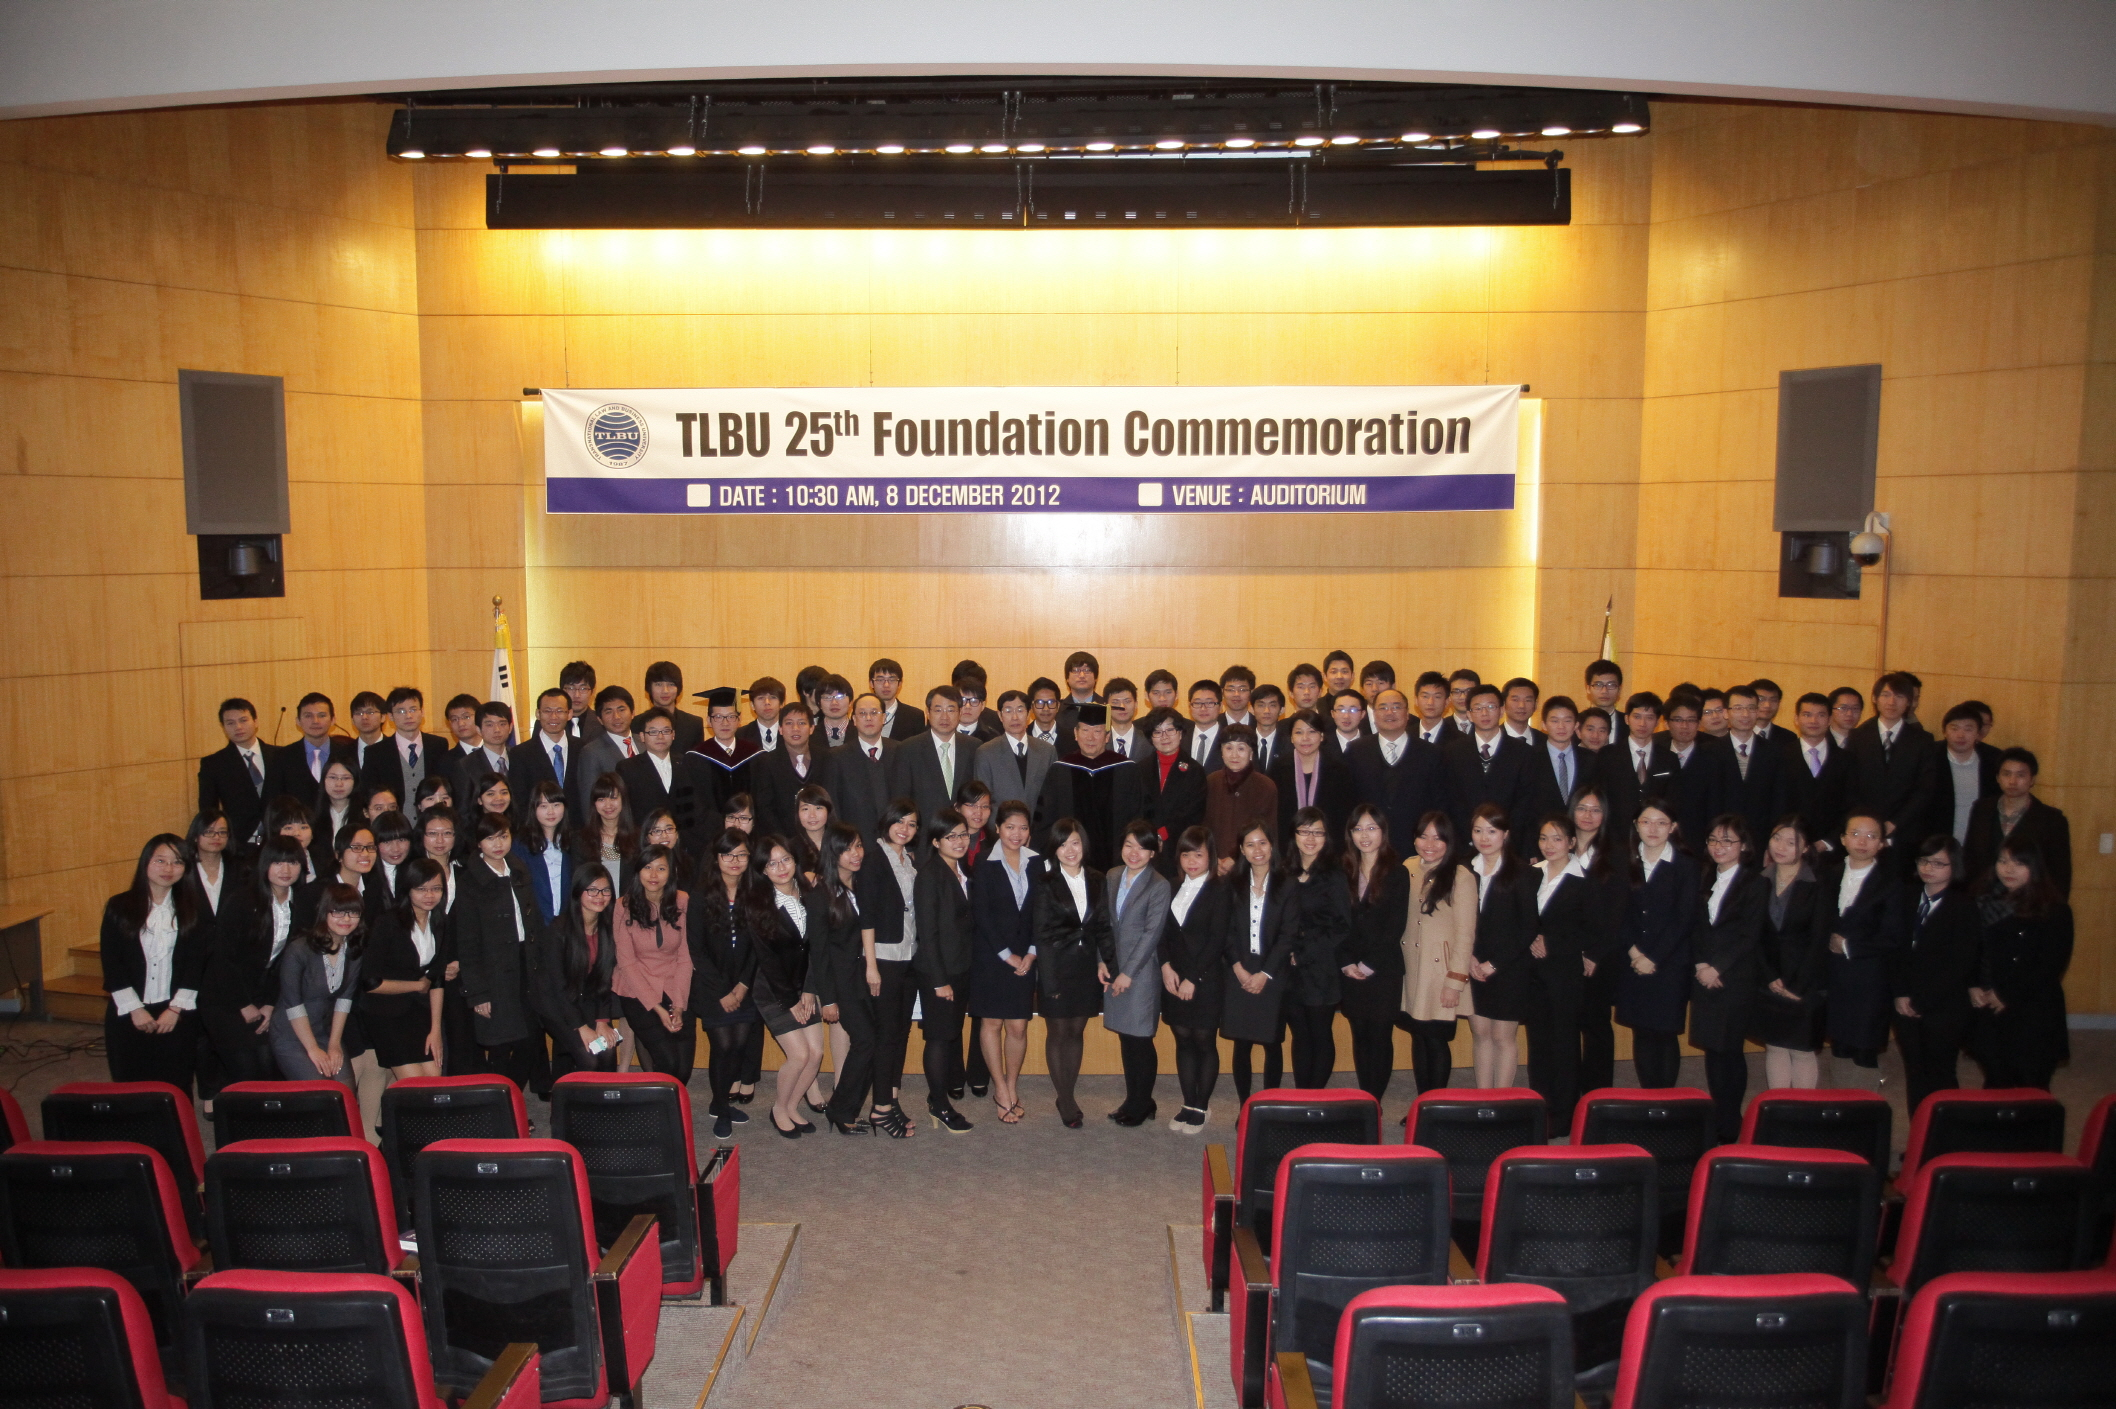 TLBU 25th Foundation Commemoration